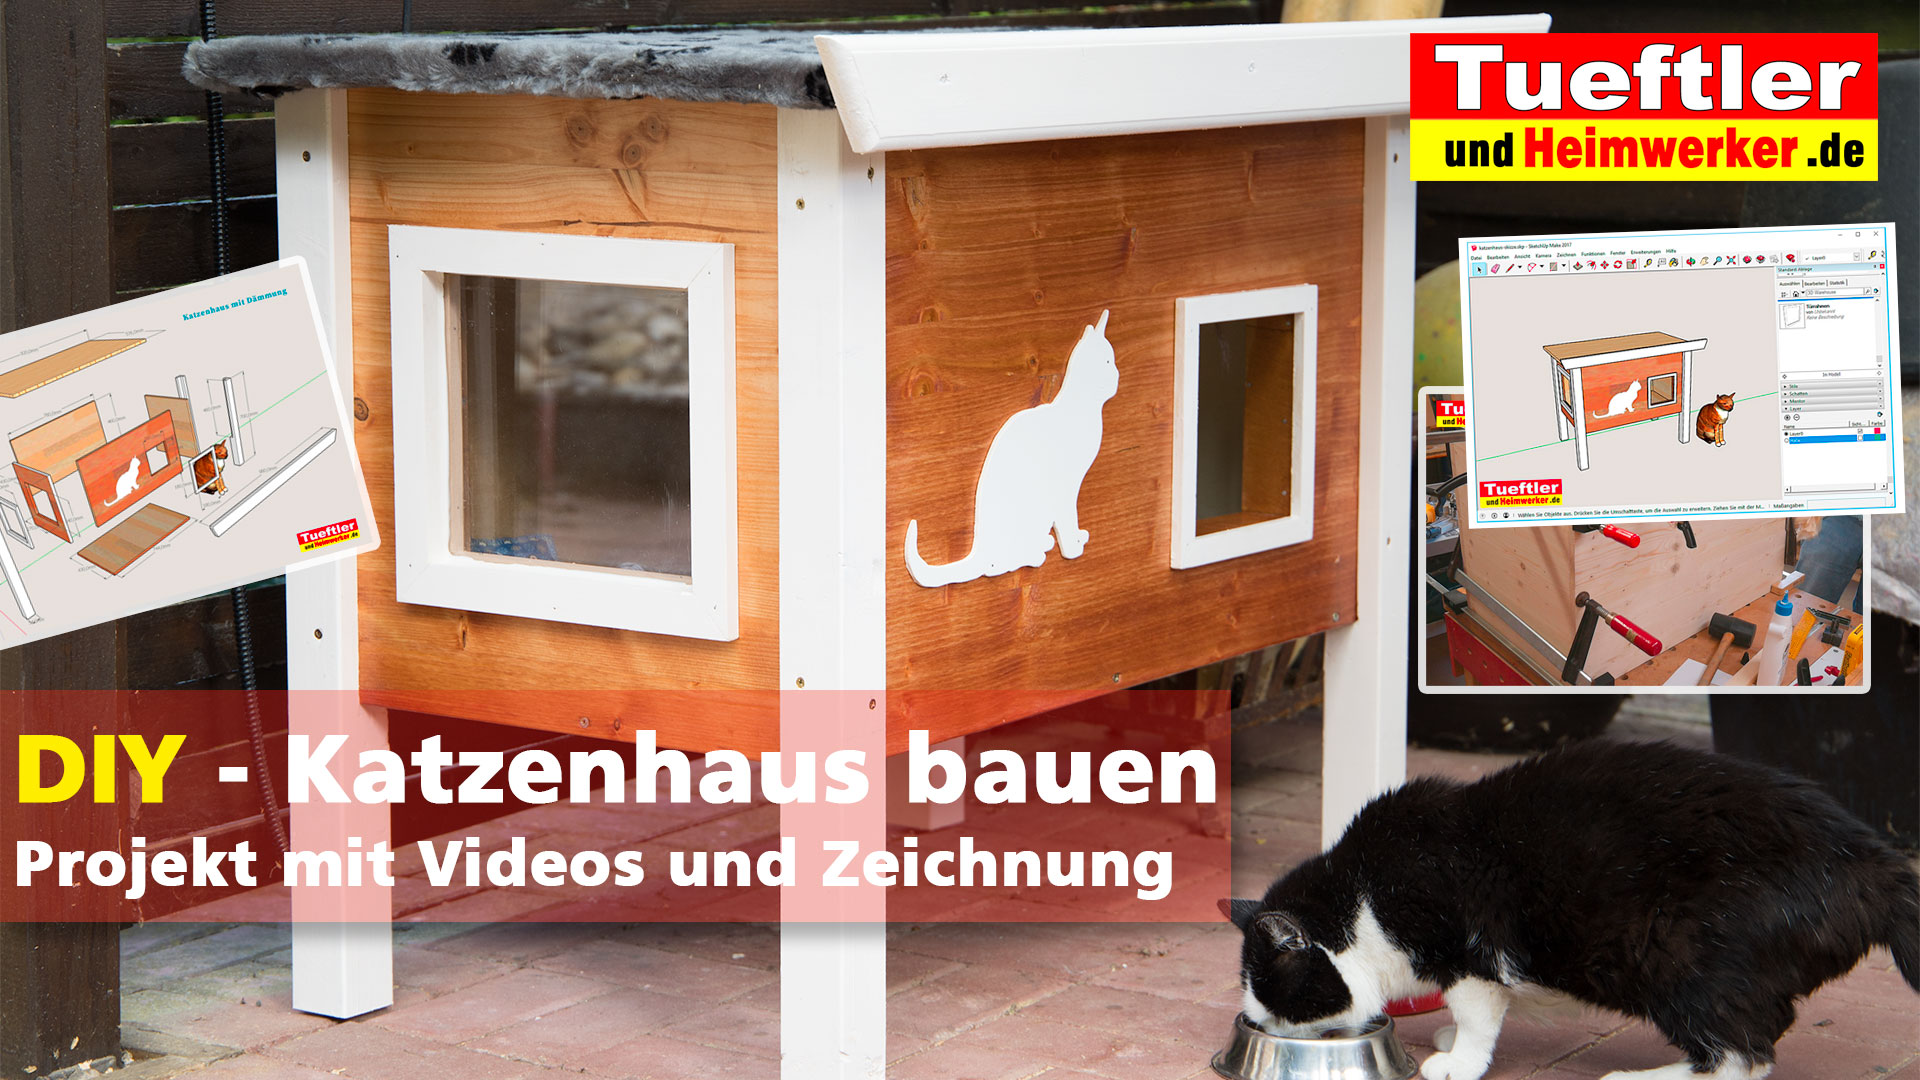 outdoor katzenhaus diy projekt bauanleitung tueftler und. Black Bedroom Furniture Sets. Home Design Ideas